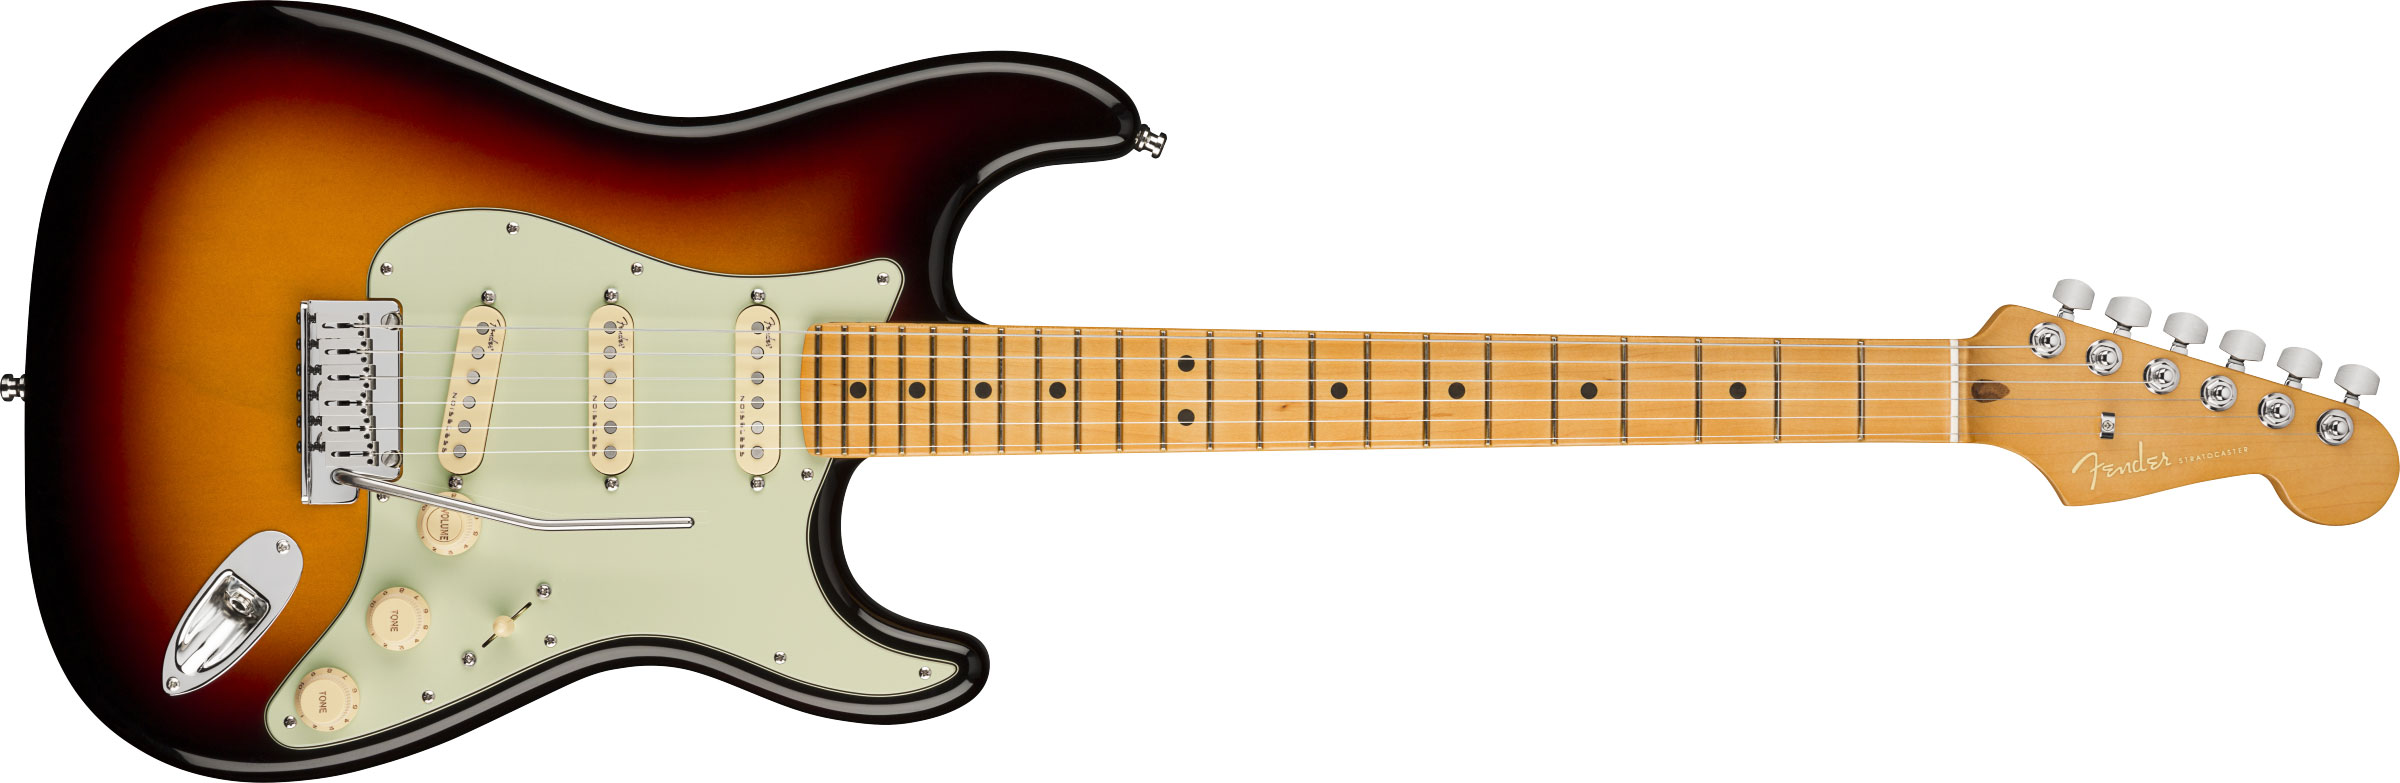 GUITARRA FENDER AM ULTRA STRATOCASTER MAPLE 011-8012-712 ULTRABURST